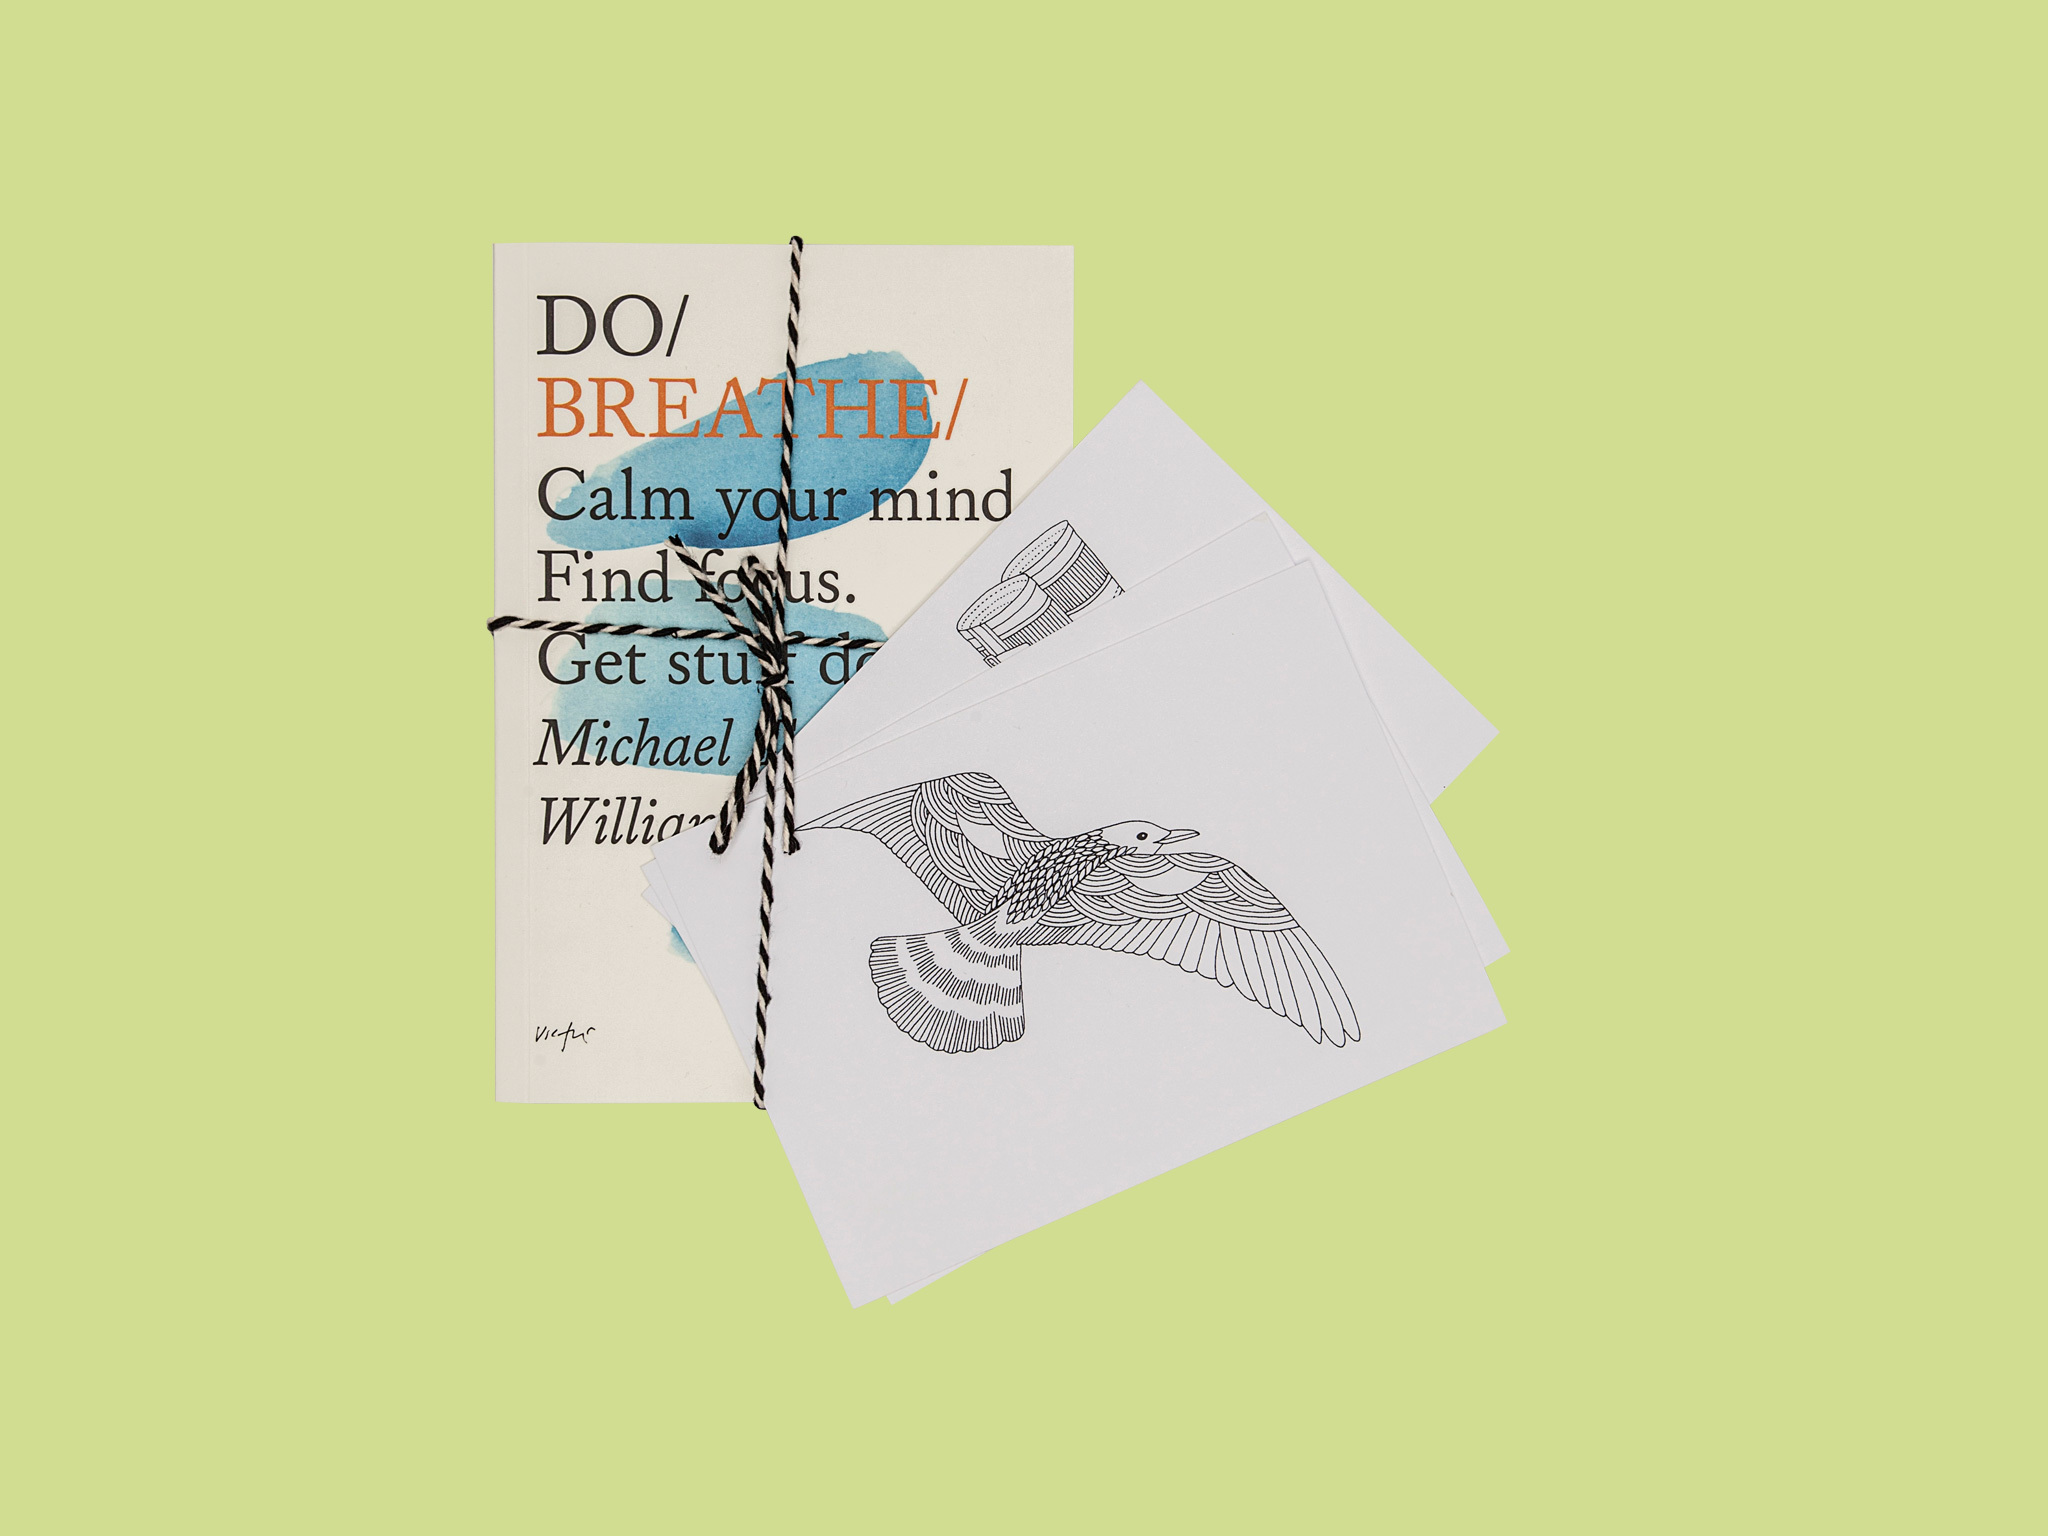 'Do Breathe' by Michael Townsend Williams and postcards by Millie Marotta